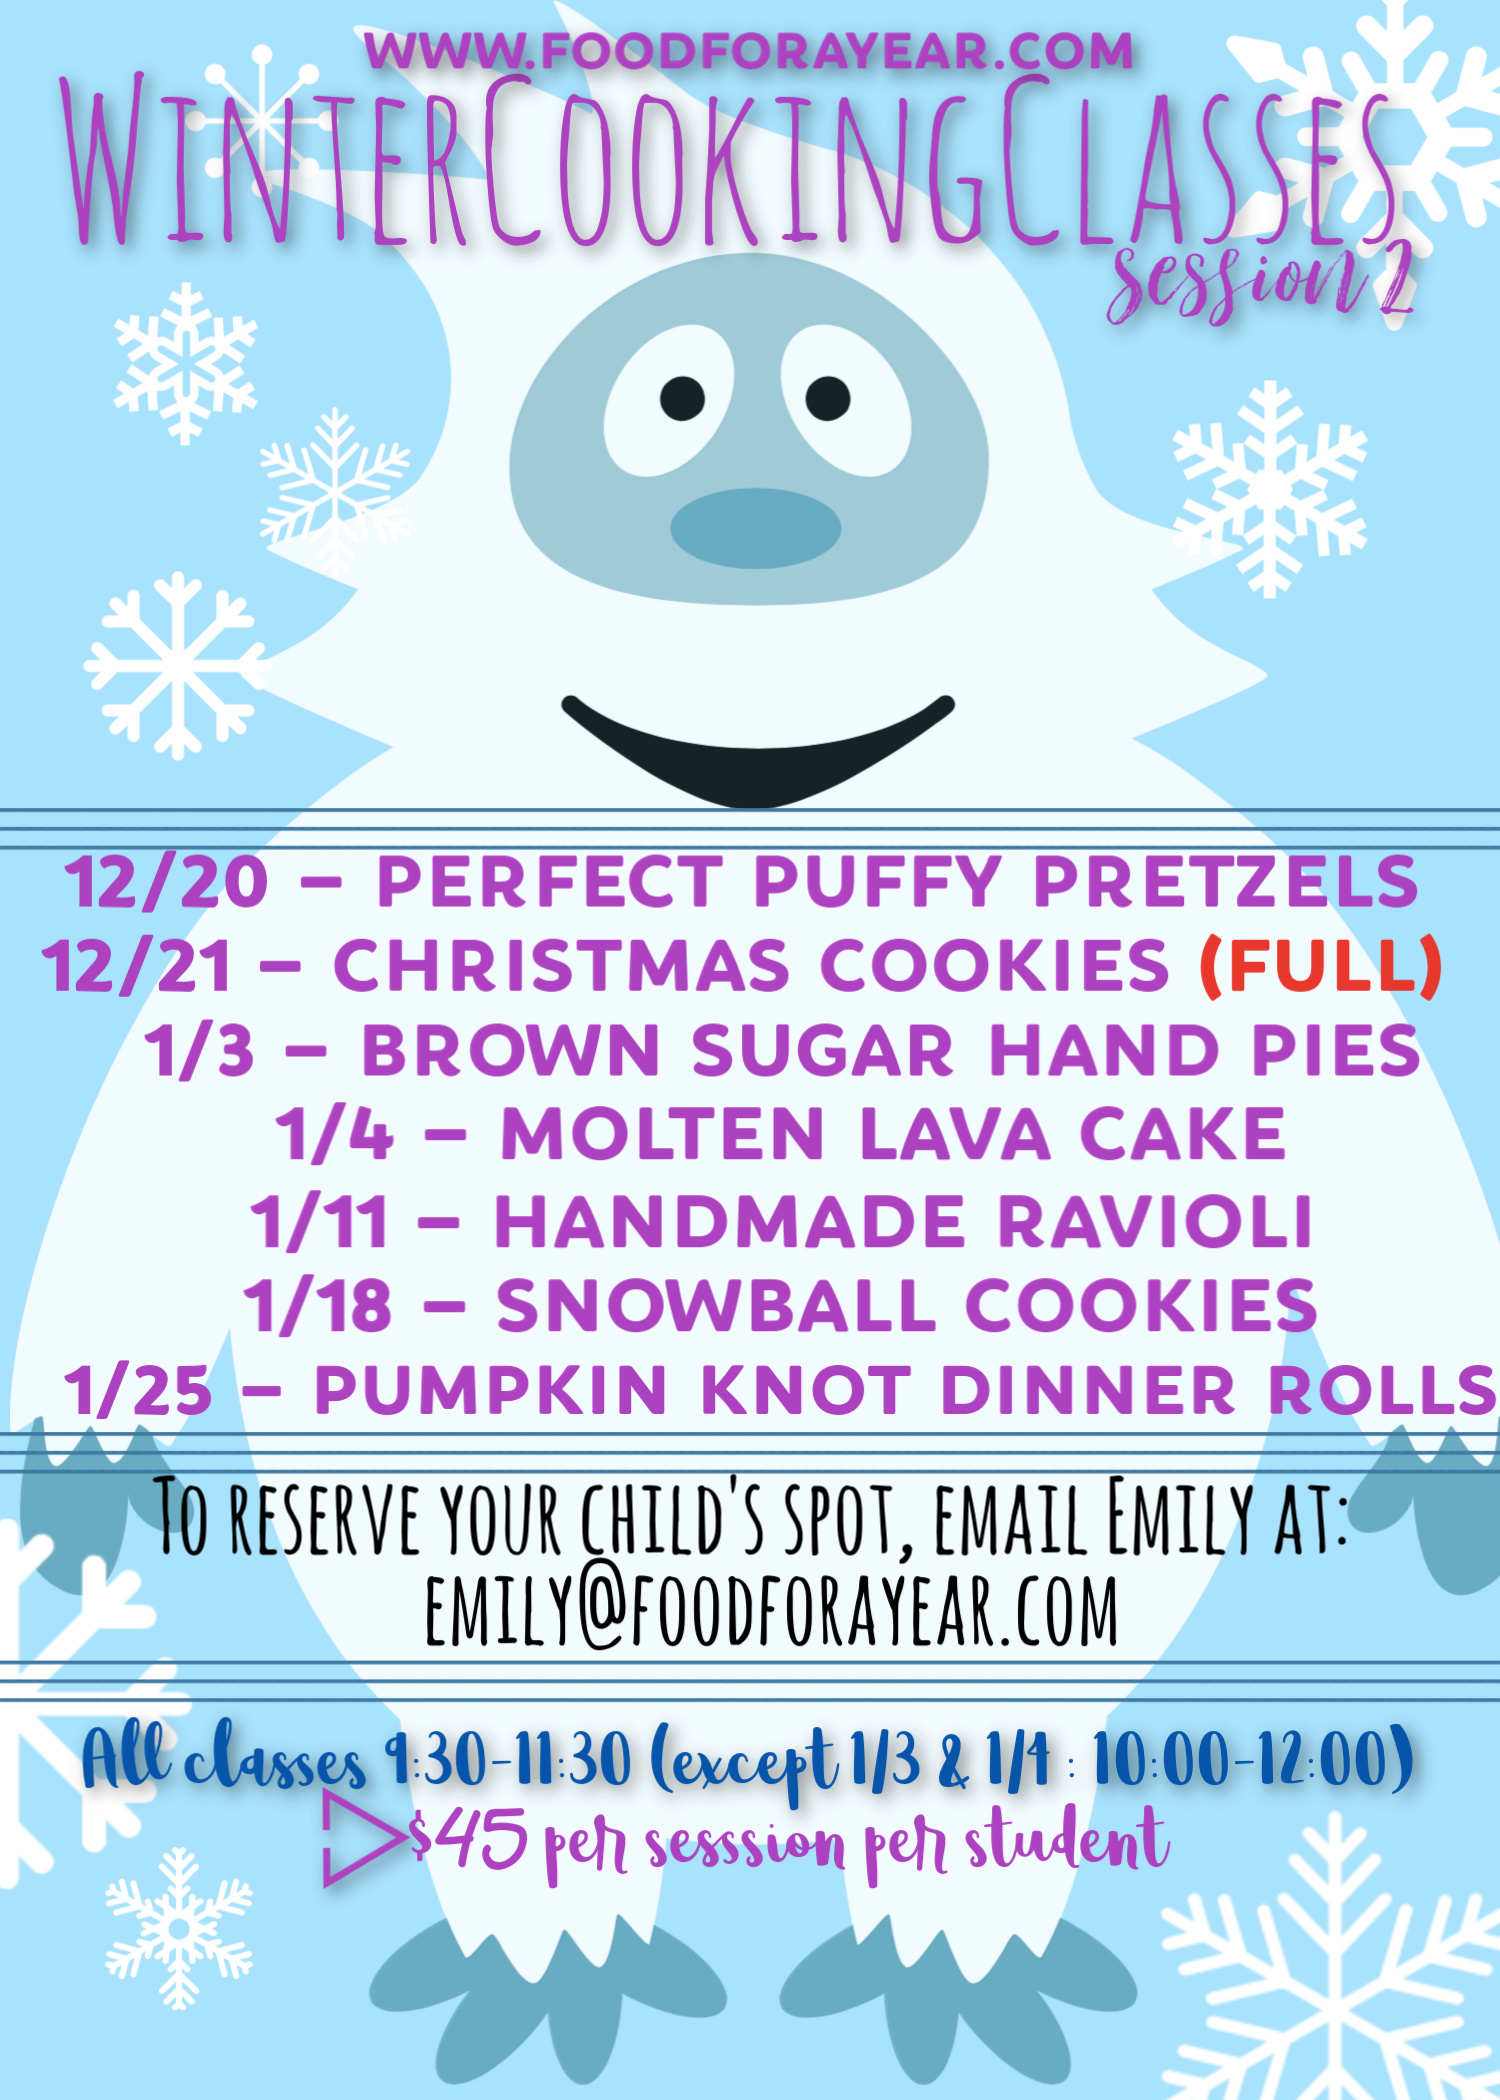 Winter 2018-2019 Kid's Cooking Classes Session 2